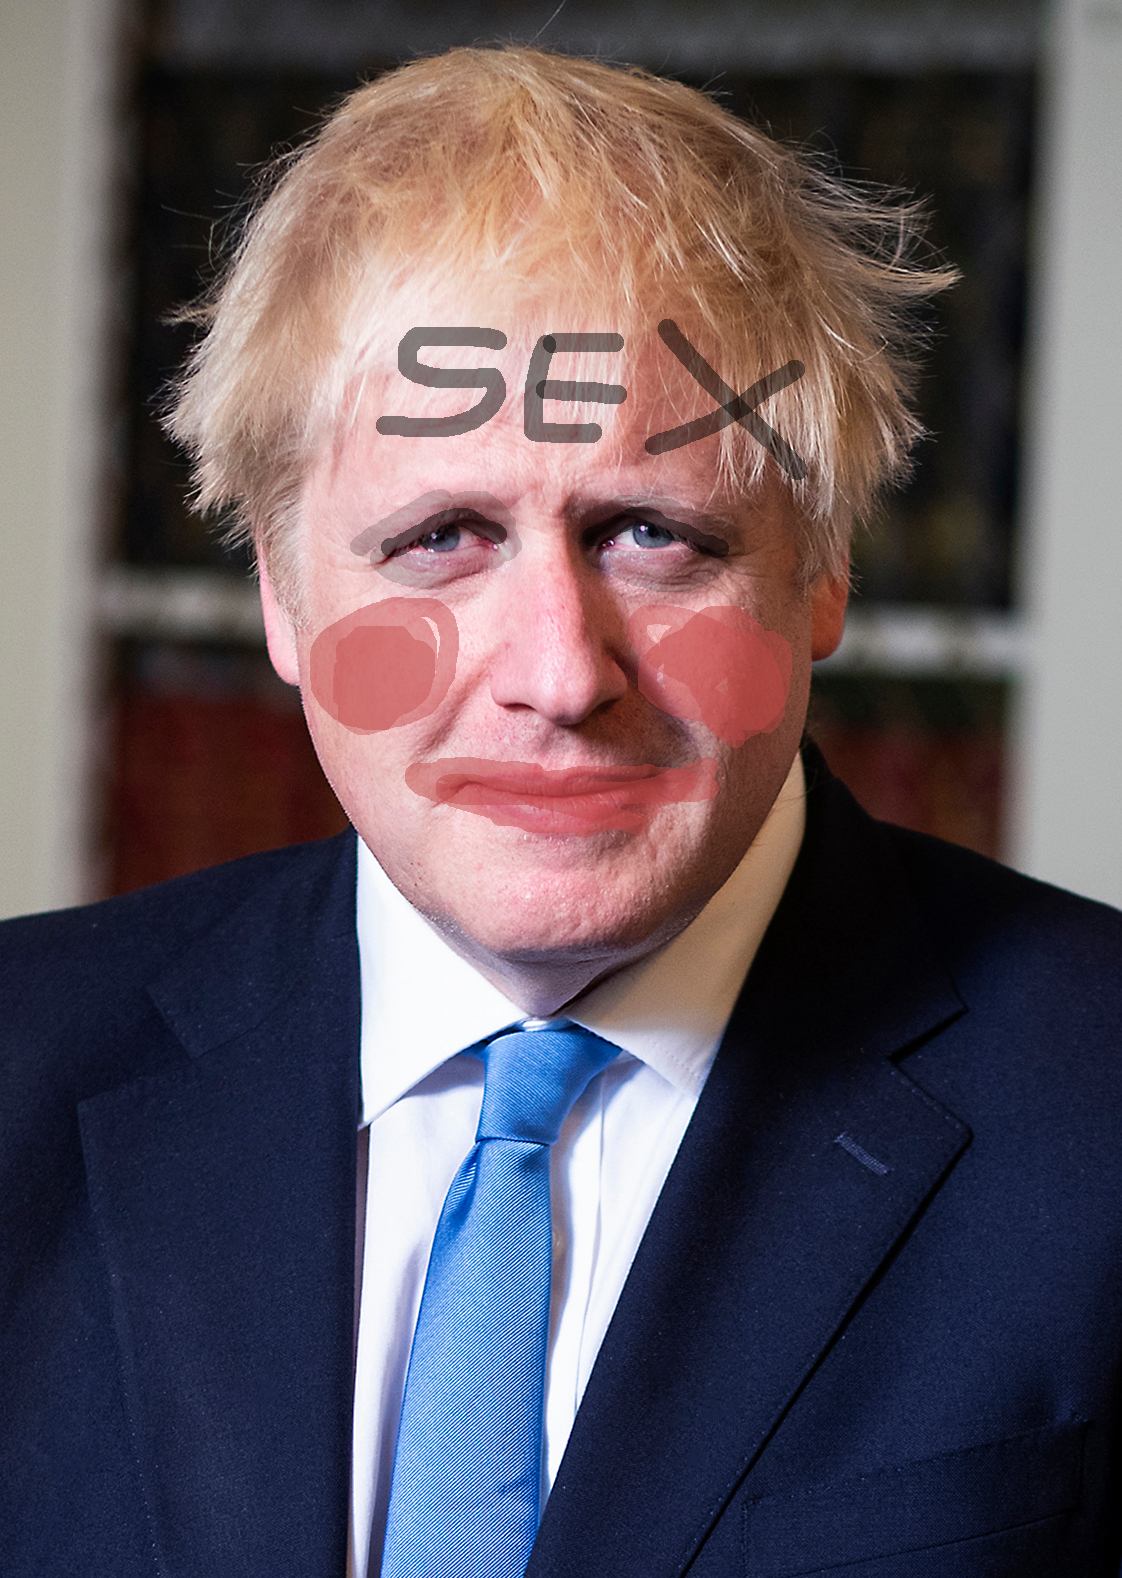 The-Prime-Minister-Boris-Johnson-Portrai